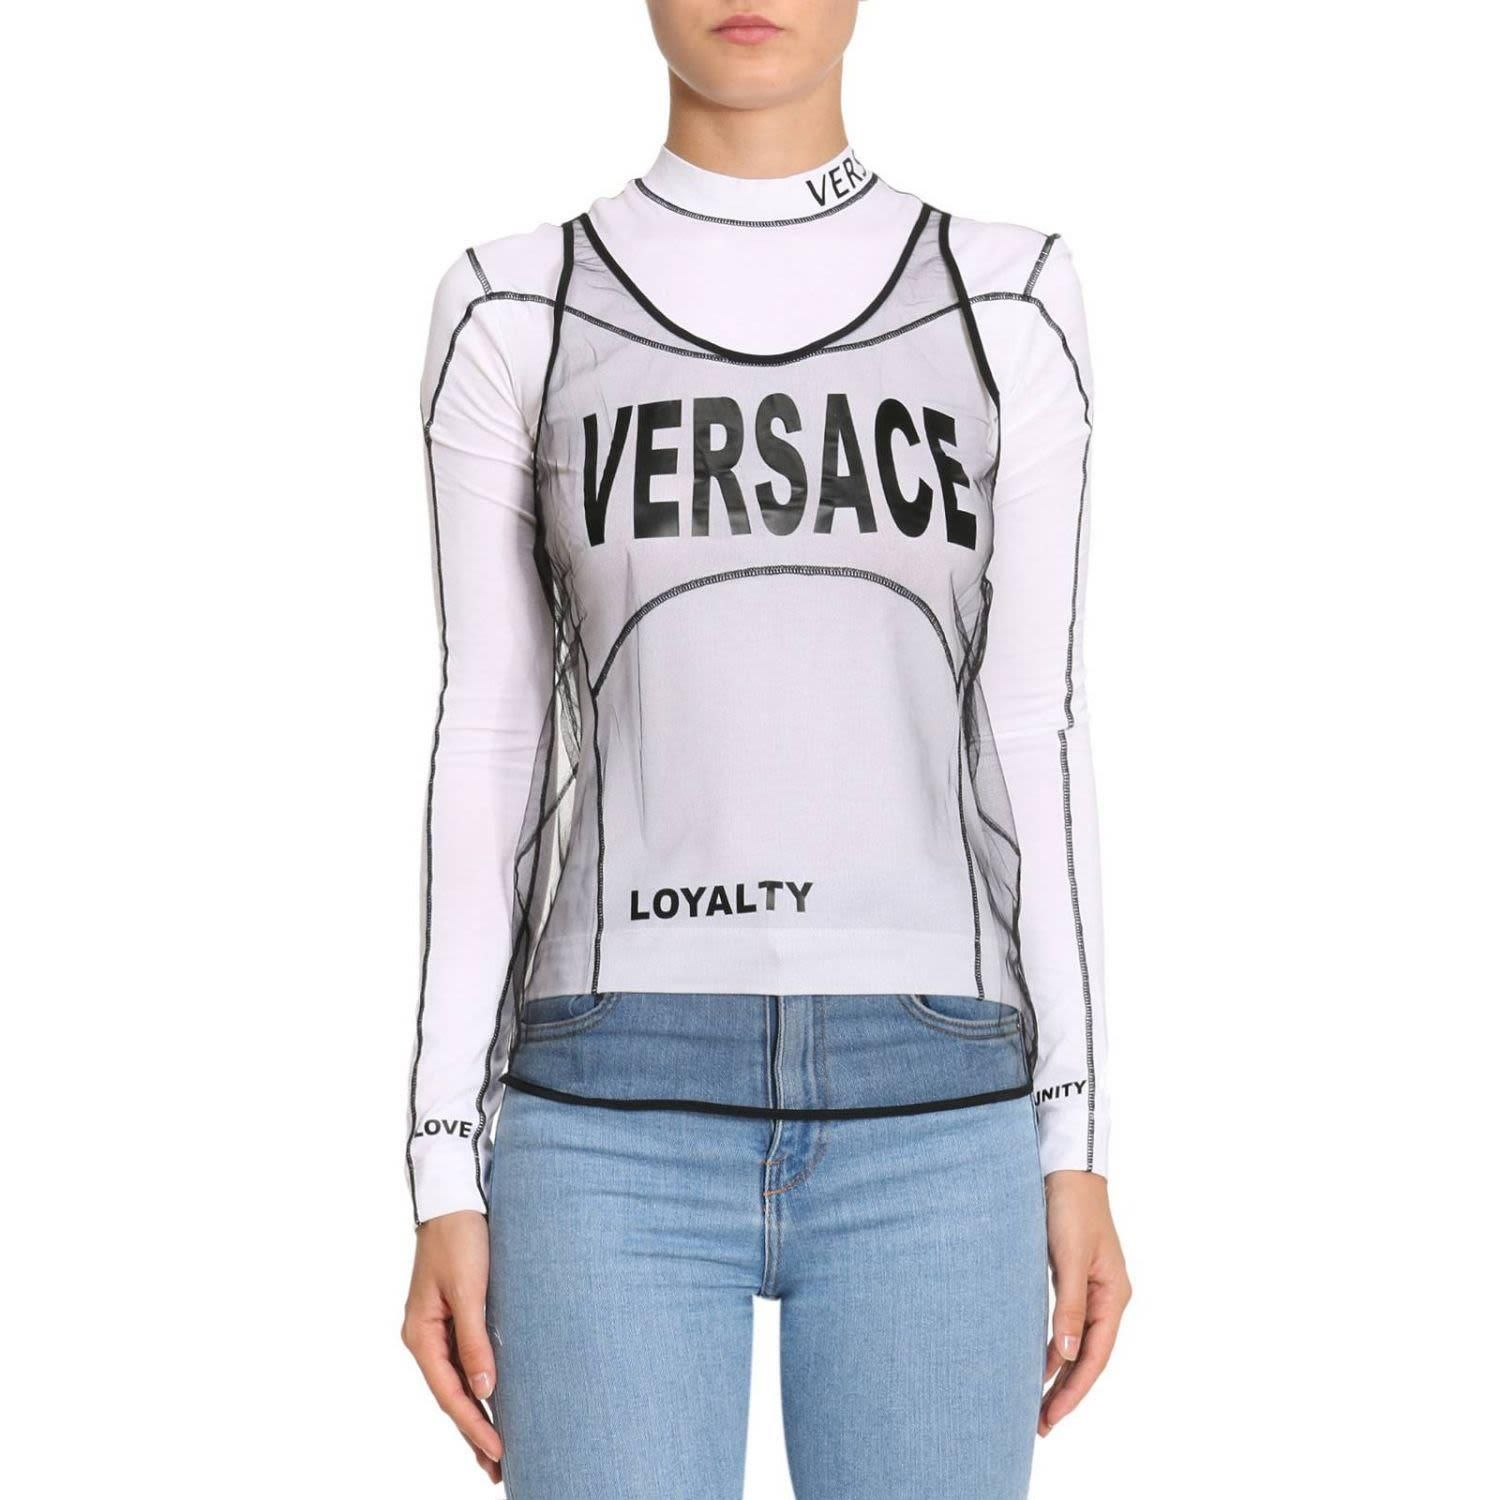 versace shirt ladies Sale,up to 77% Discounts